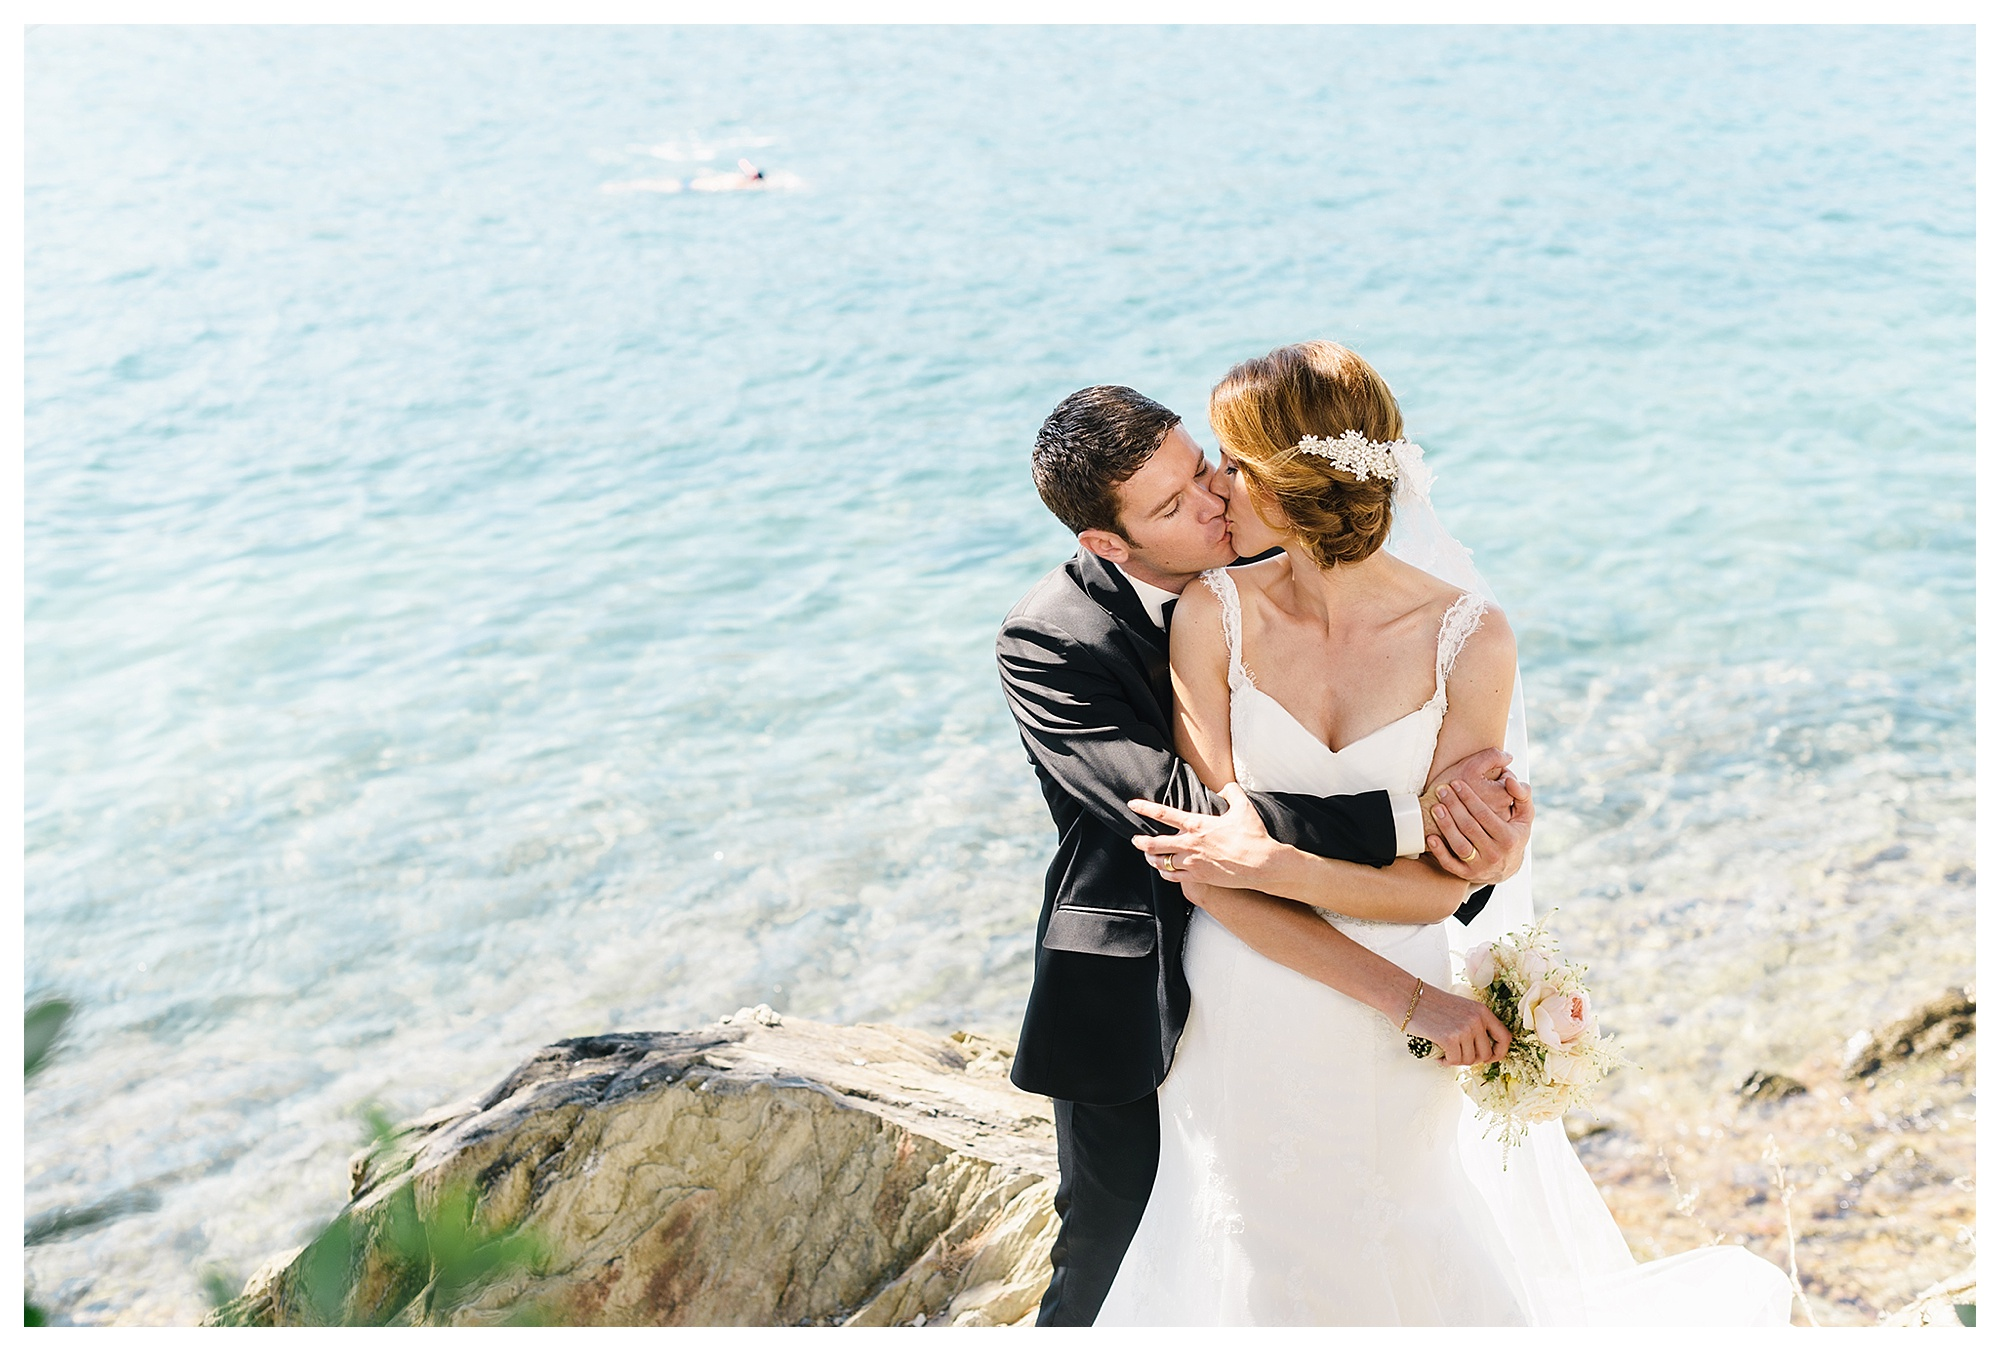 Fotograf Konstanz - Wedding Spain Cadaques Elmar Feuerbacher Photography 3 - Als Destination Wedding Fotograf in Cadaqués, Spanien  - 3 -